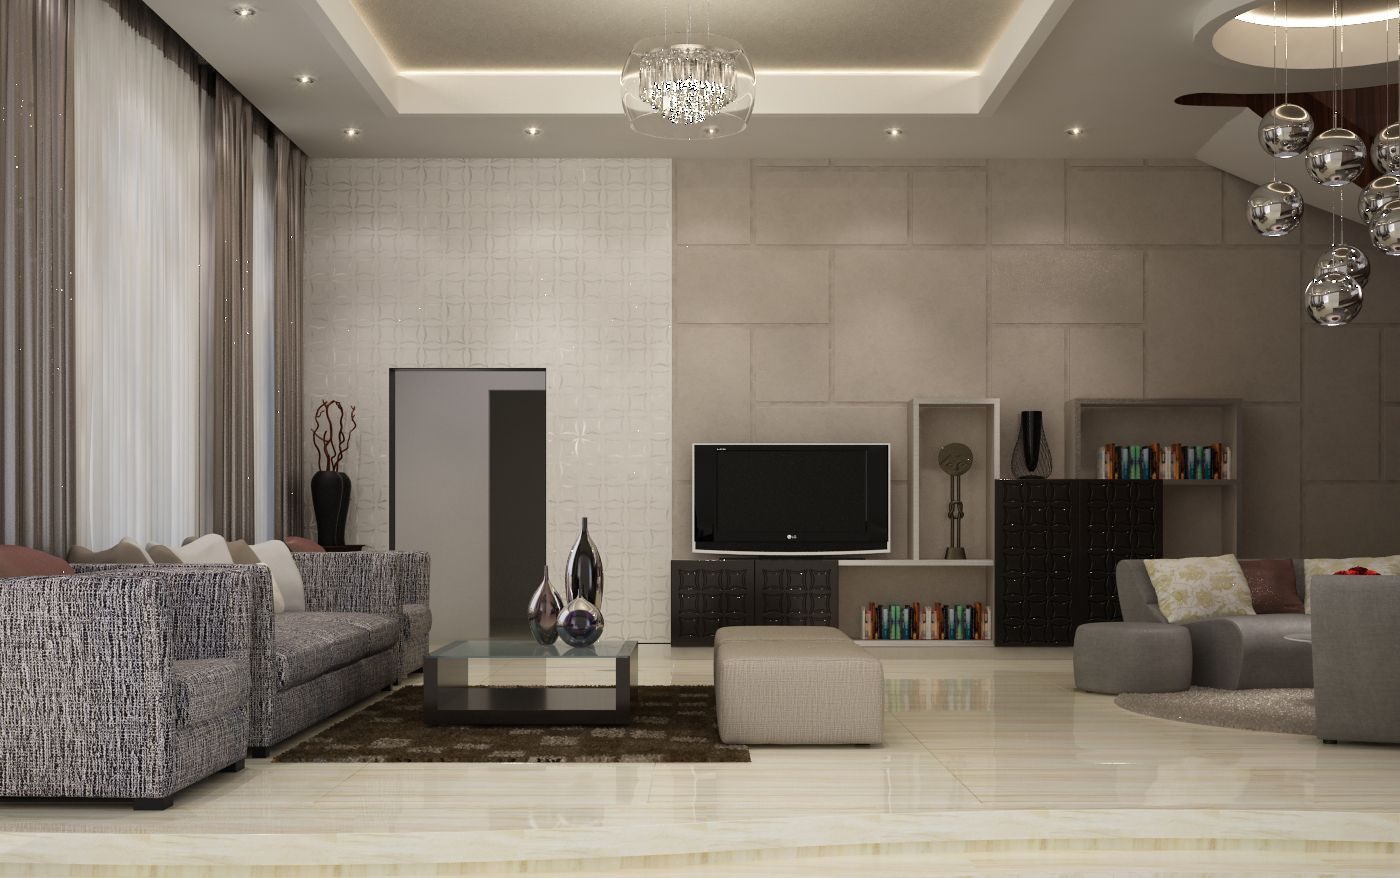 There Is A Variety Of Interior Design Ideas For Living Room In Mumbai Navi